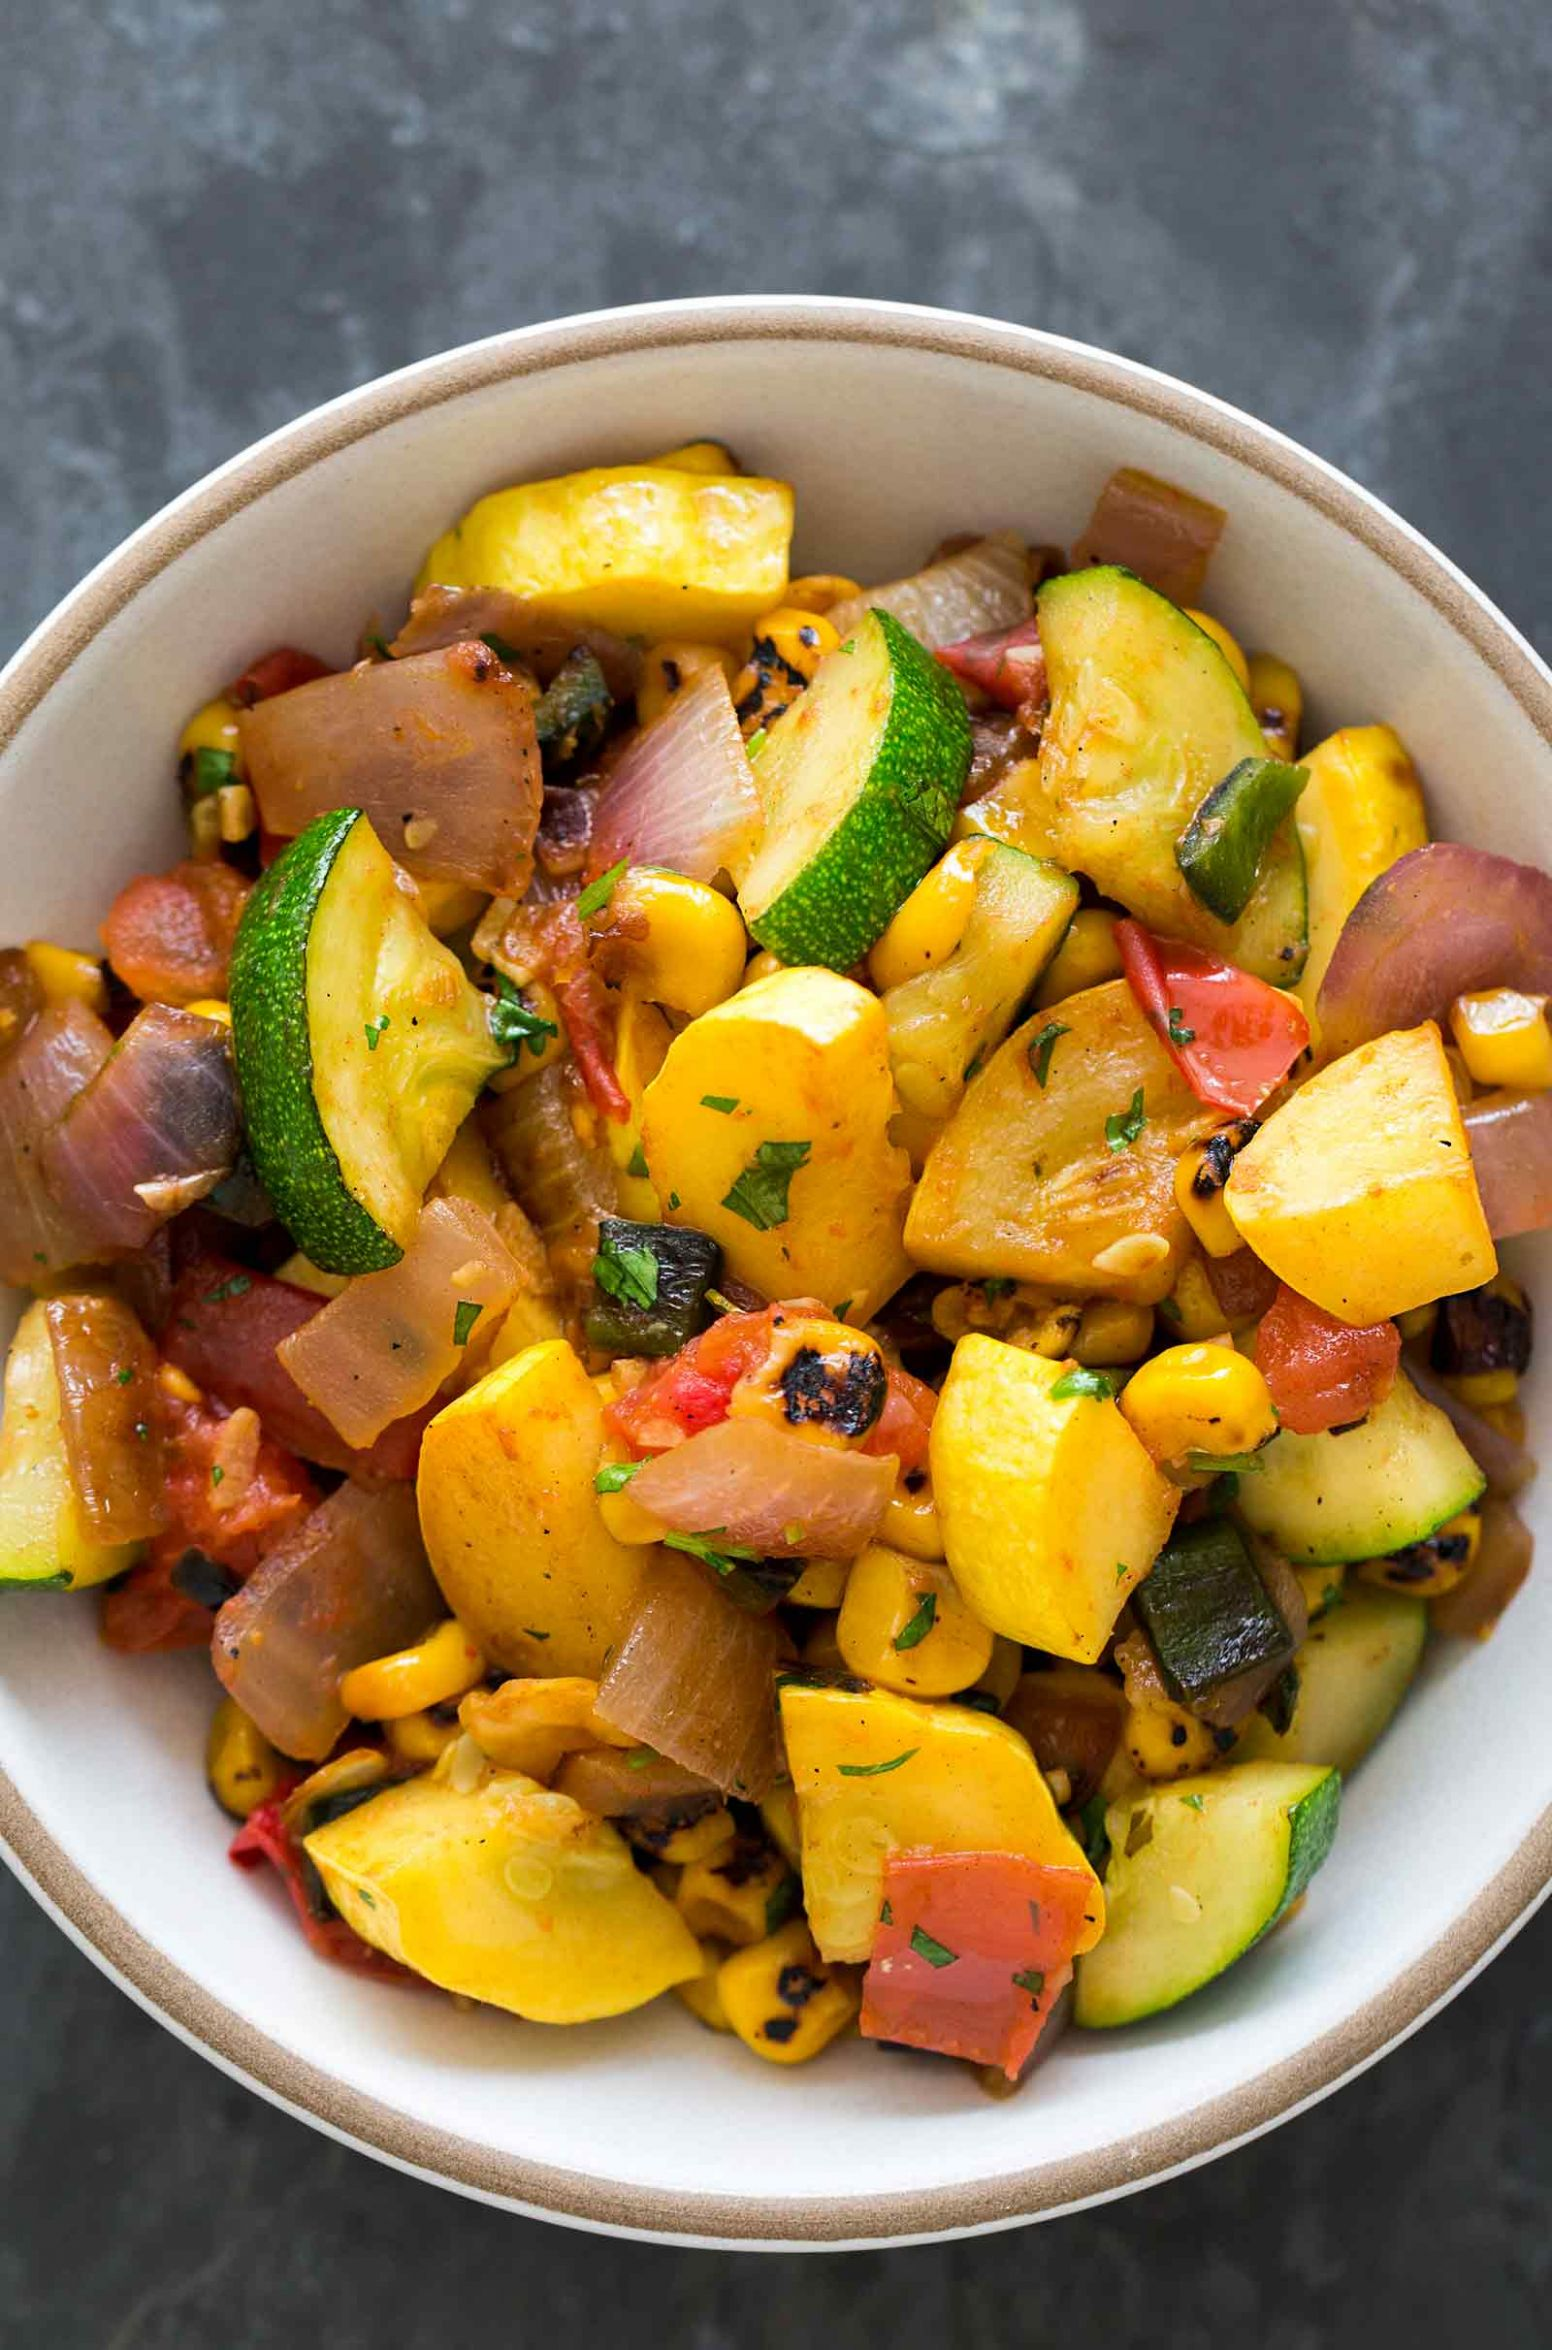 Summer Squash Green Chile Stir Fry - Recipes Summer Squash And Zucchini